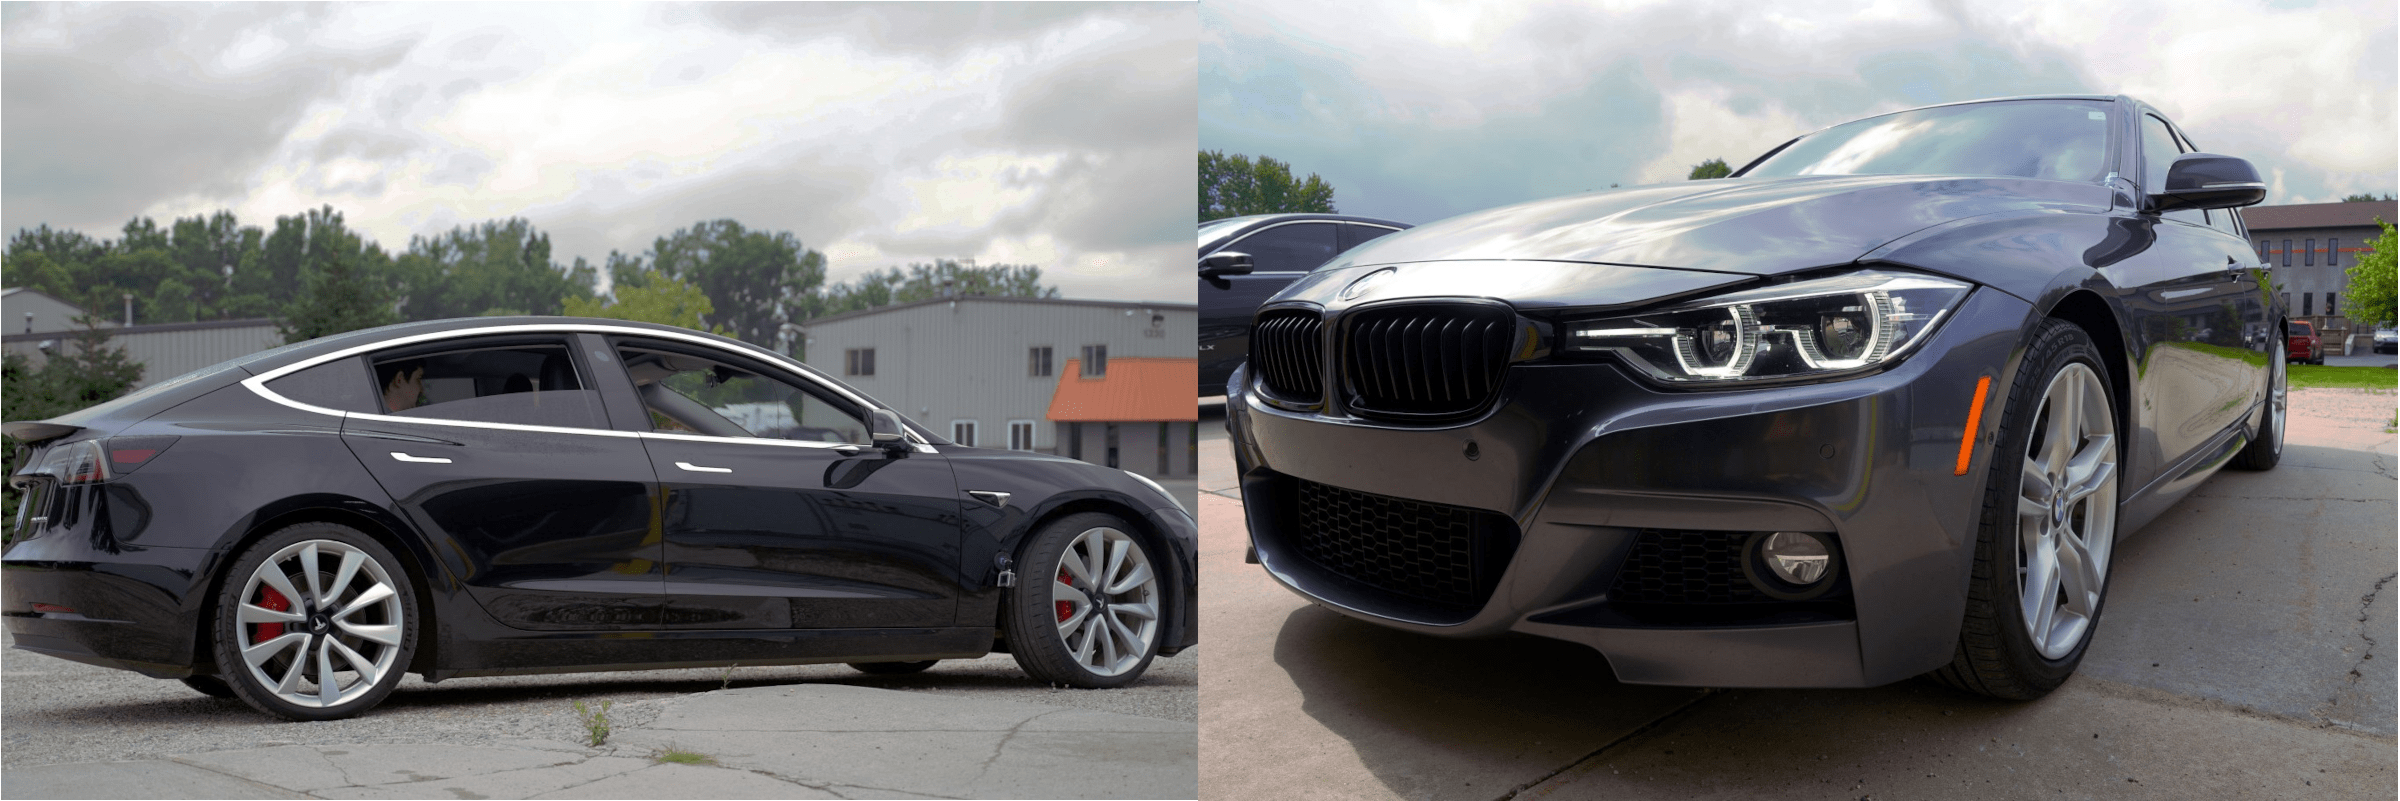 tesla and BMW vehicles side by side